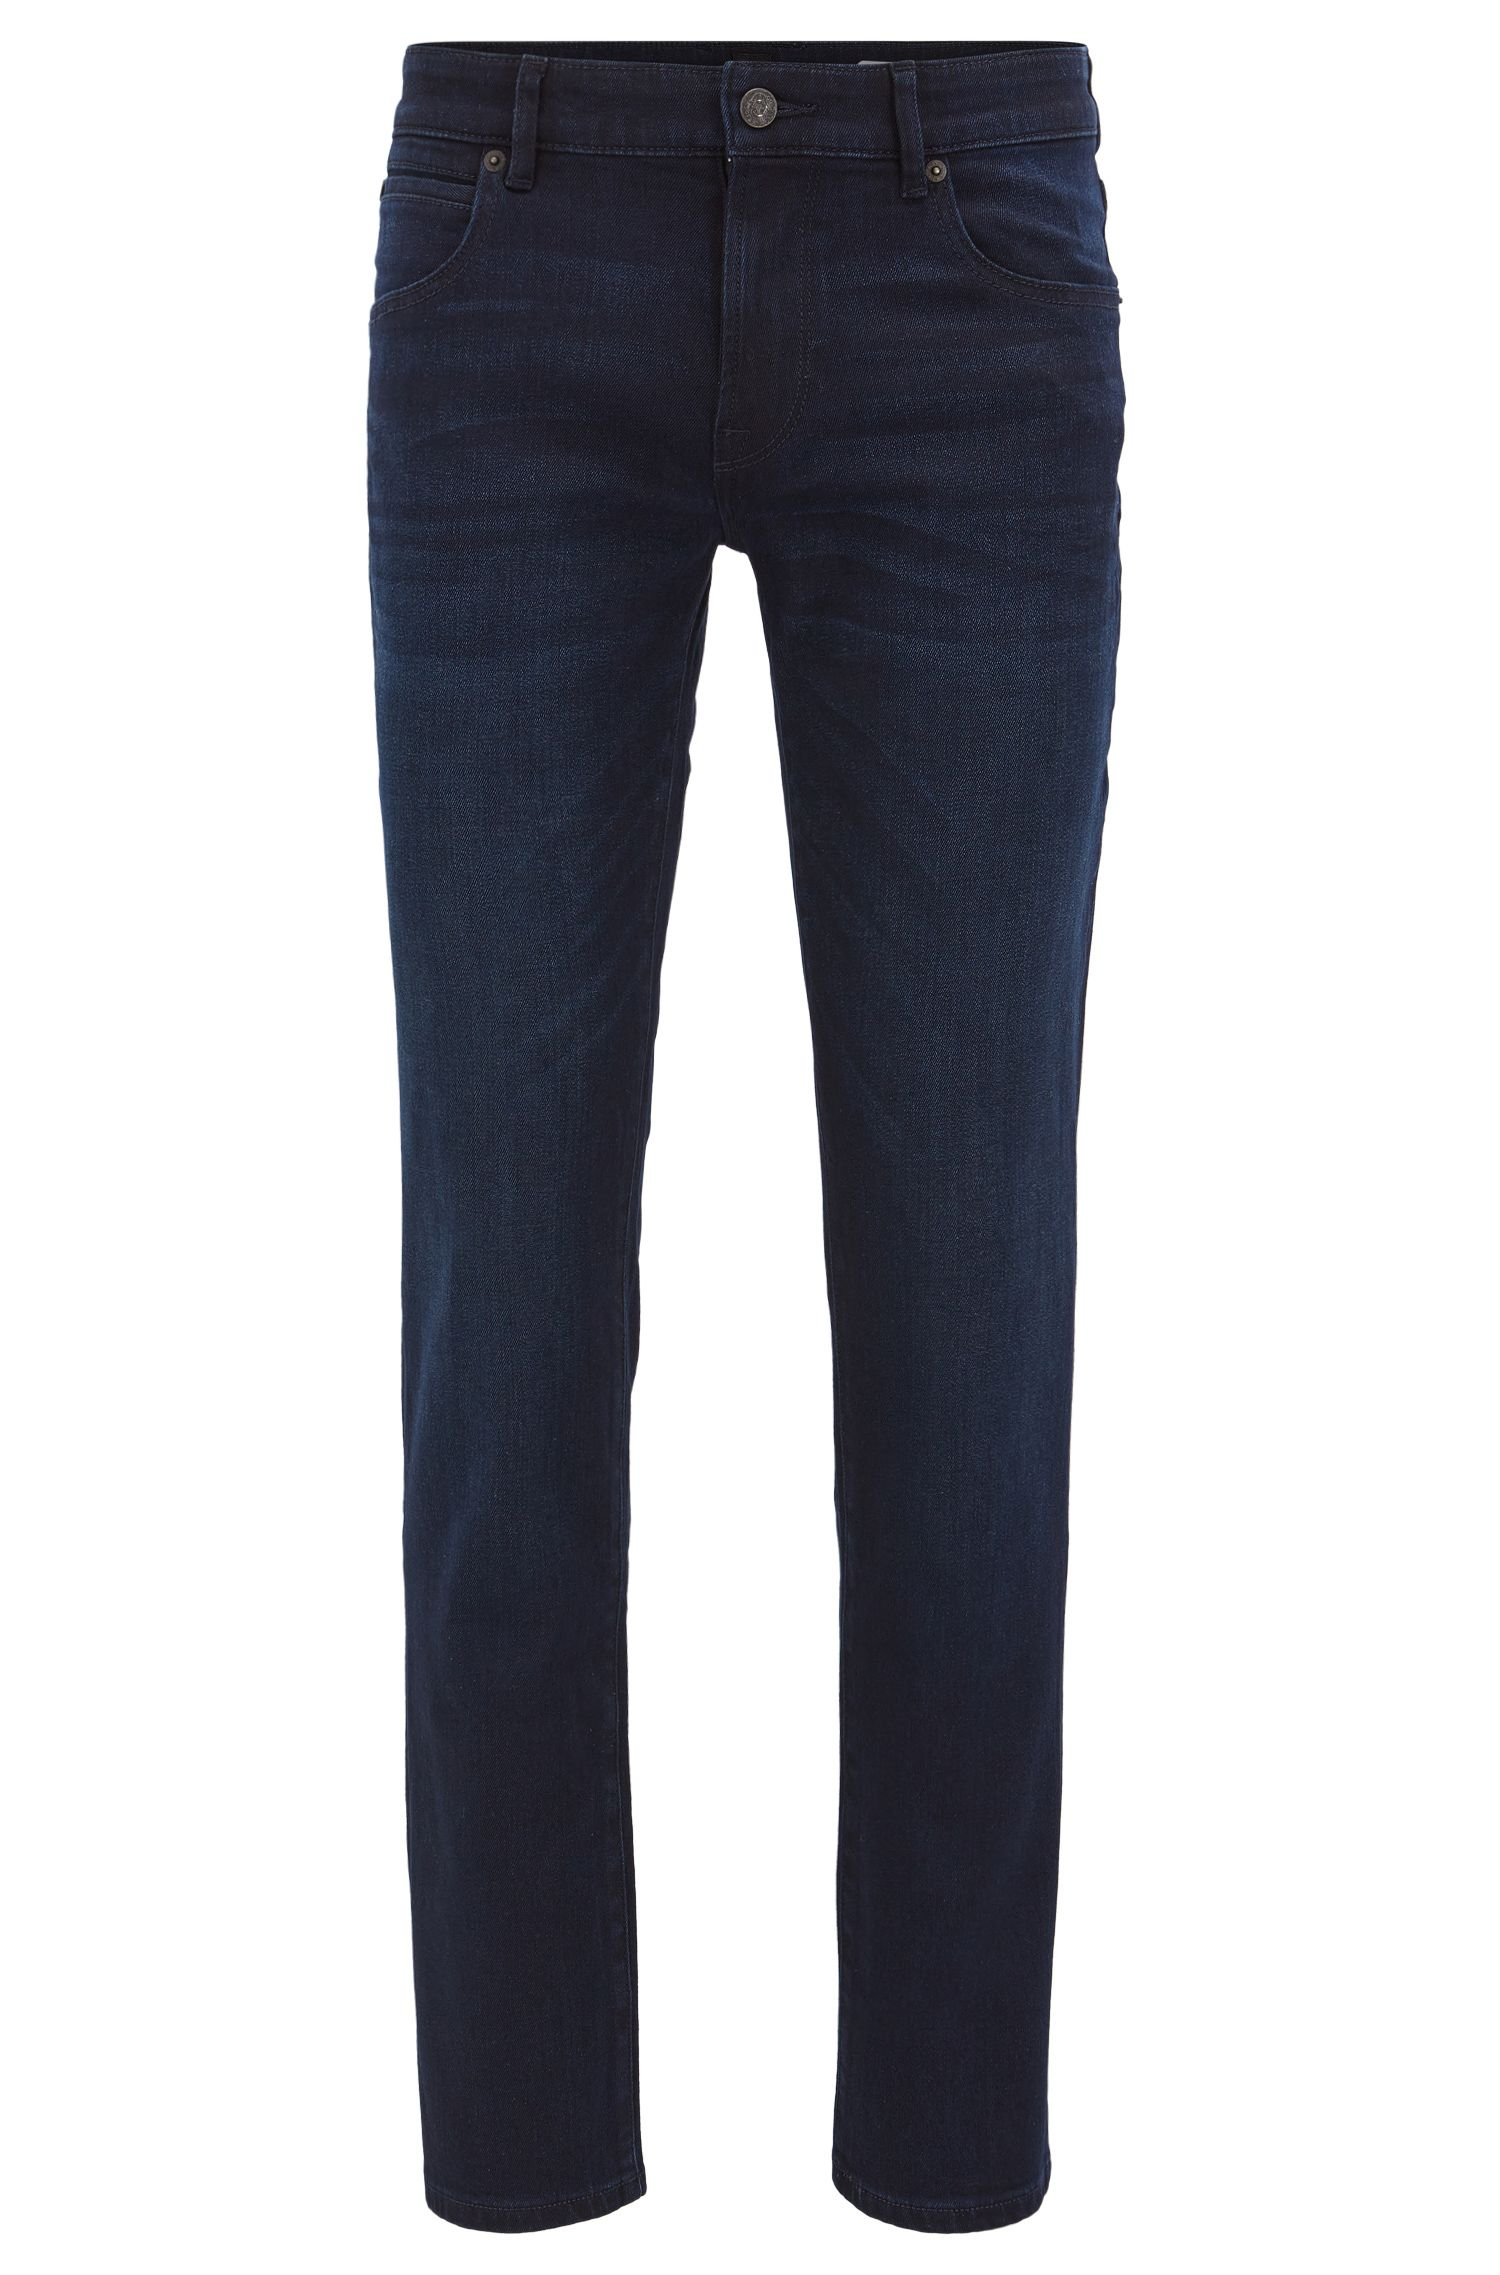 Distressed blue-black comfort stretch denim jeans in a regular fit BOSS